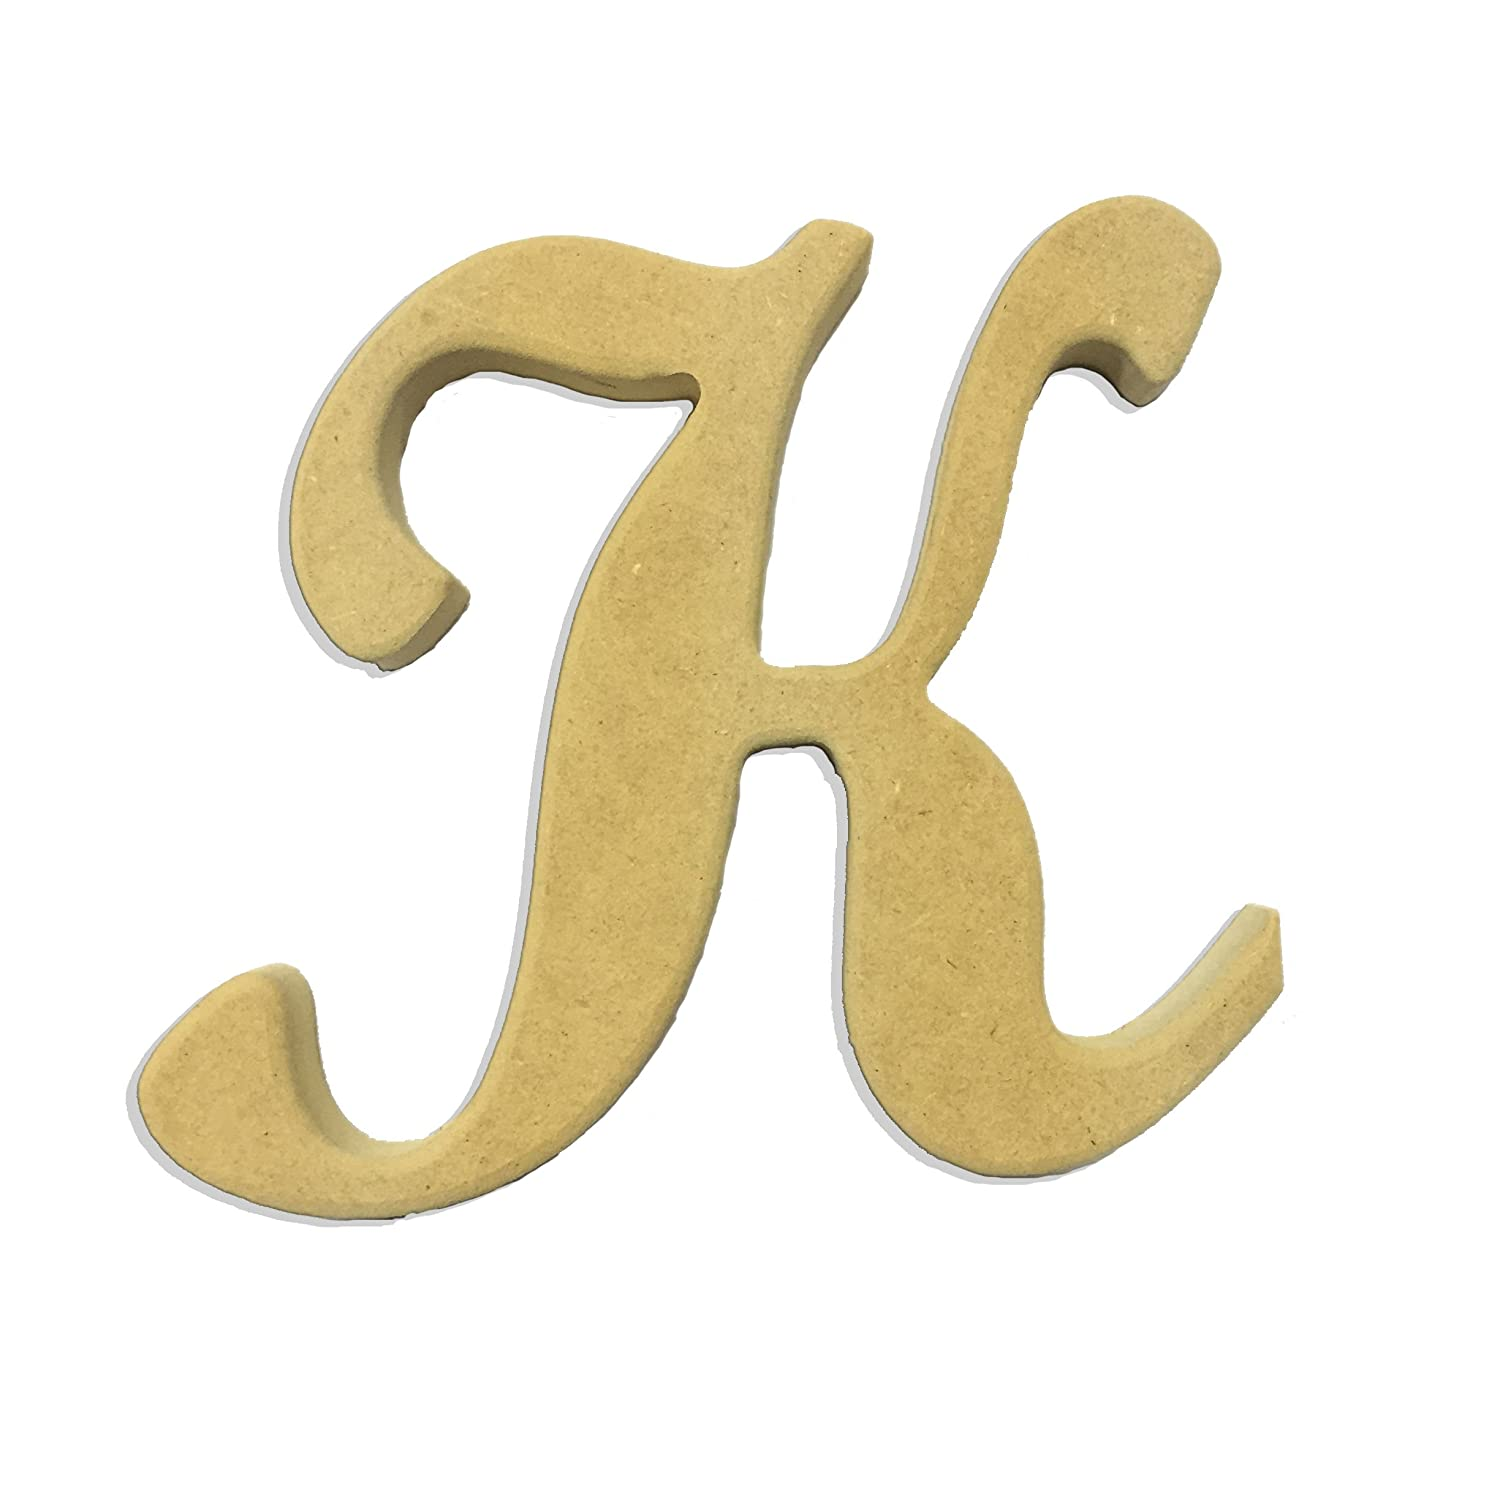 6 Capital Letter K Script Cursive Unfinished Wood Diy Craft Cutout To Sell Ready To Paint Wooden Stacked